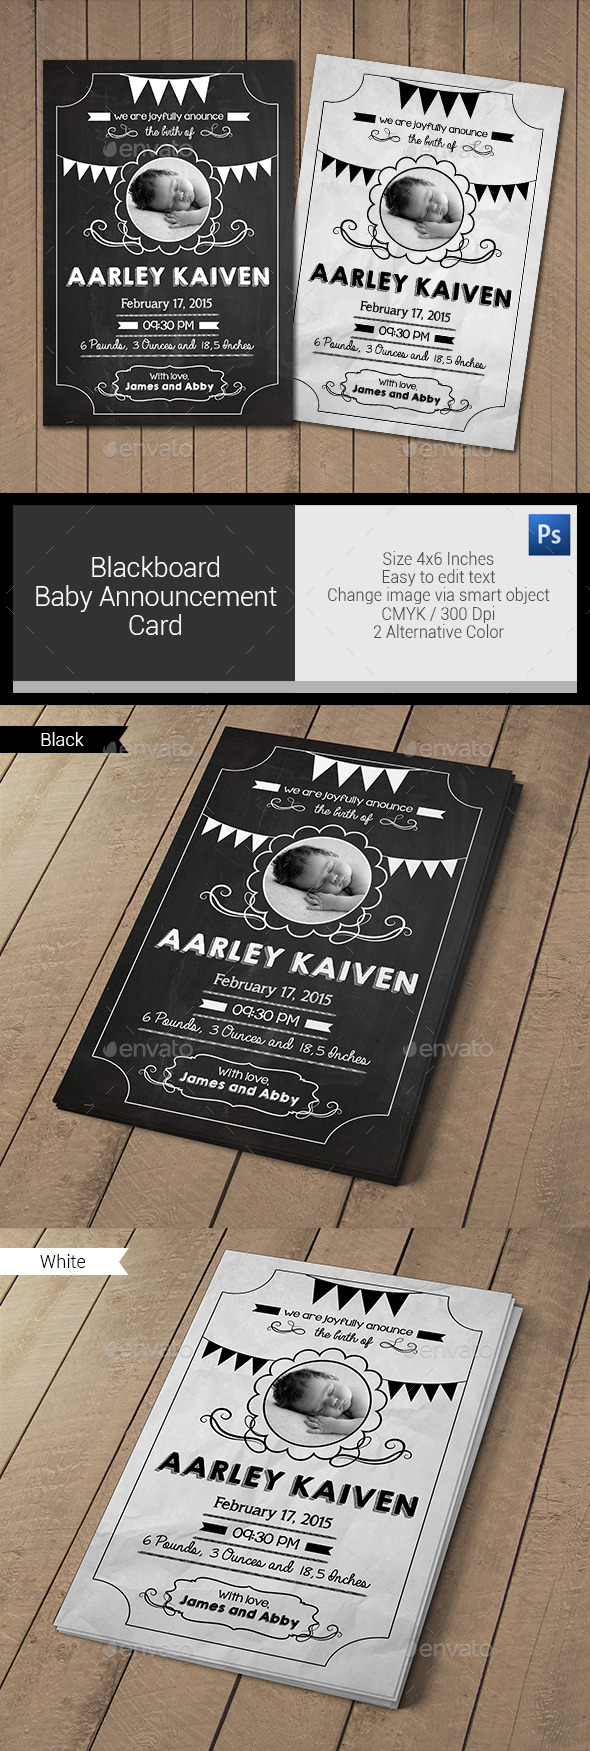 GraphicRiver Blackboard Baby Announcement Card 11022472